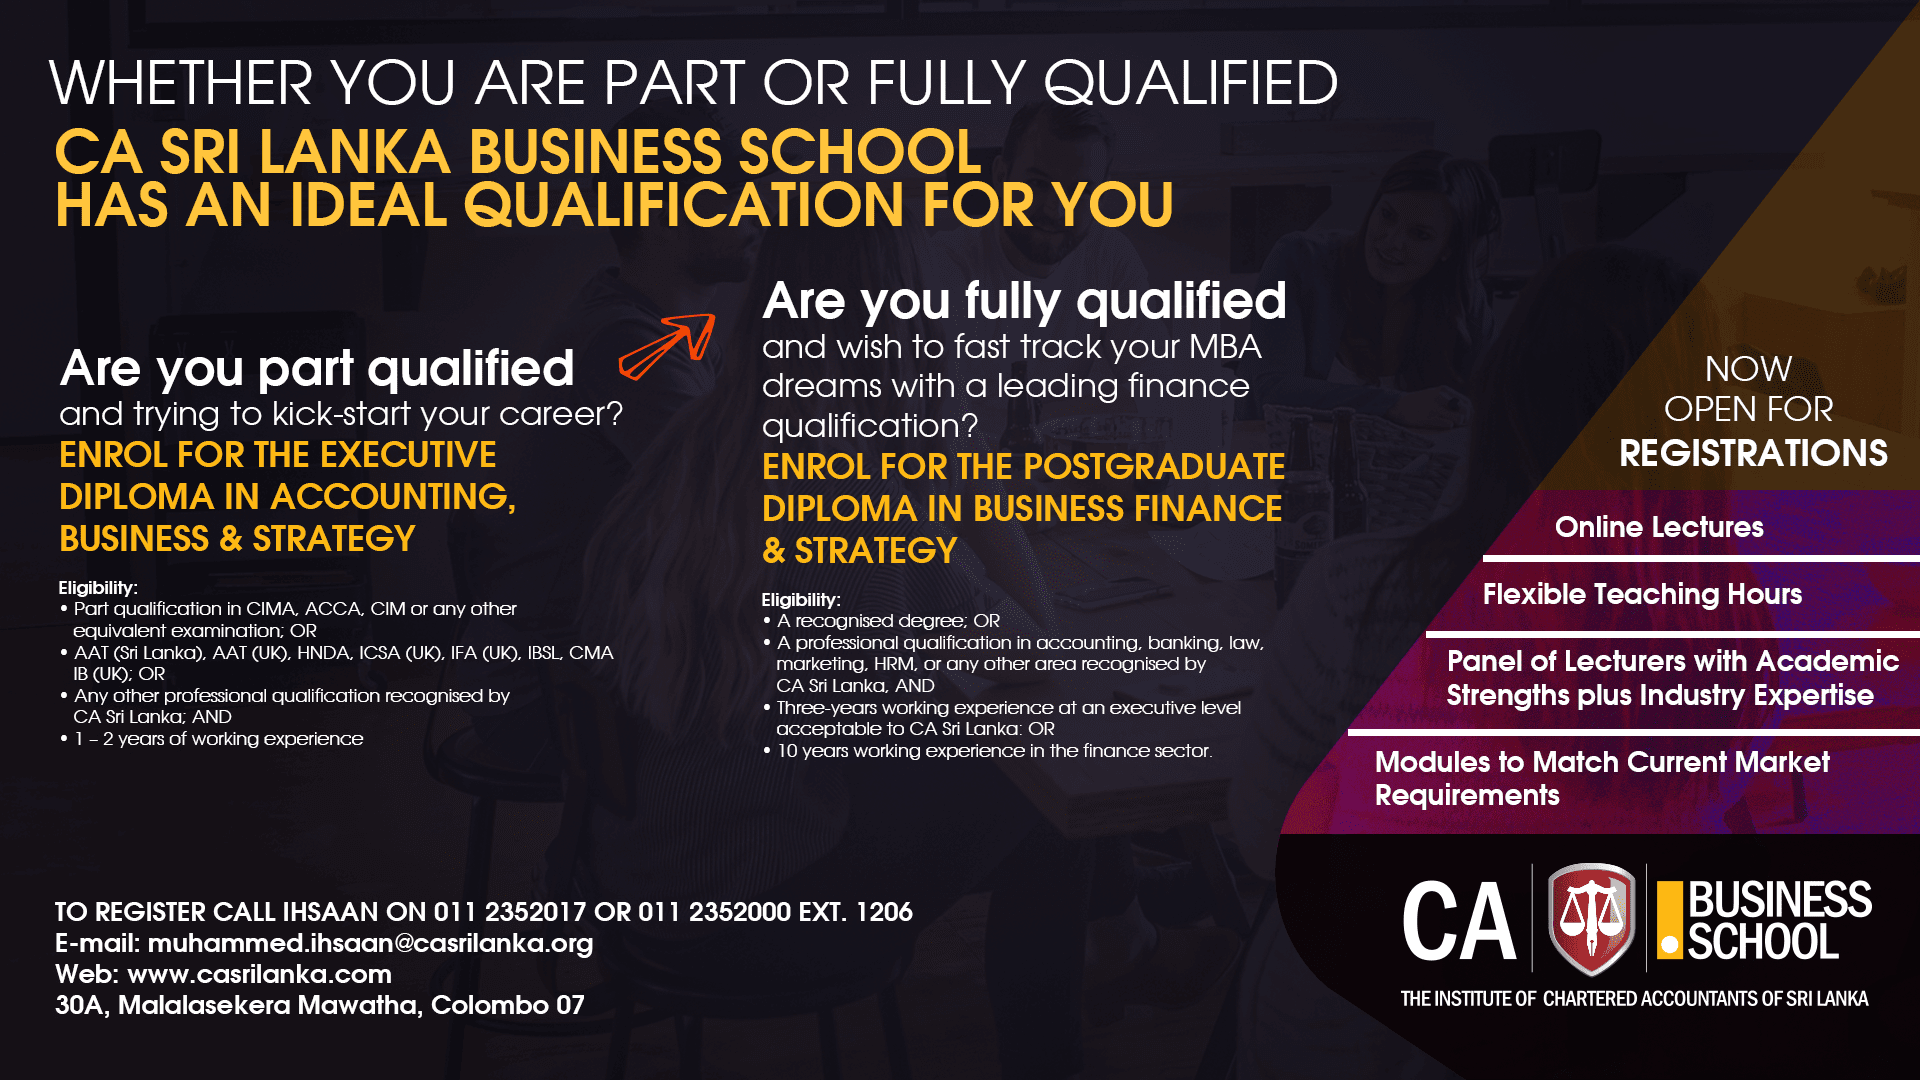 Whether You Are Part or Fully Qualified - Join CA Business School